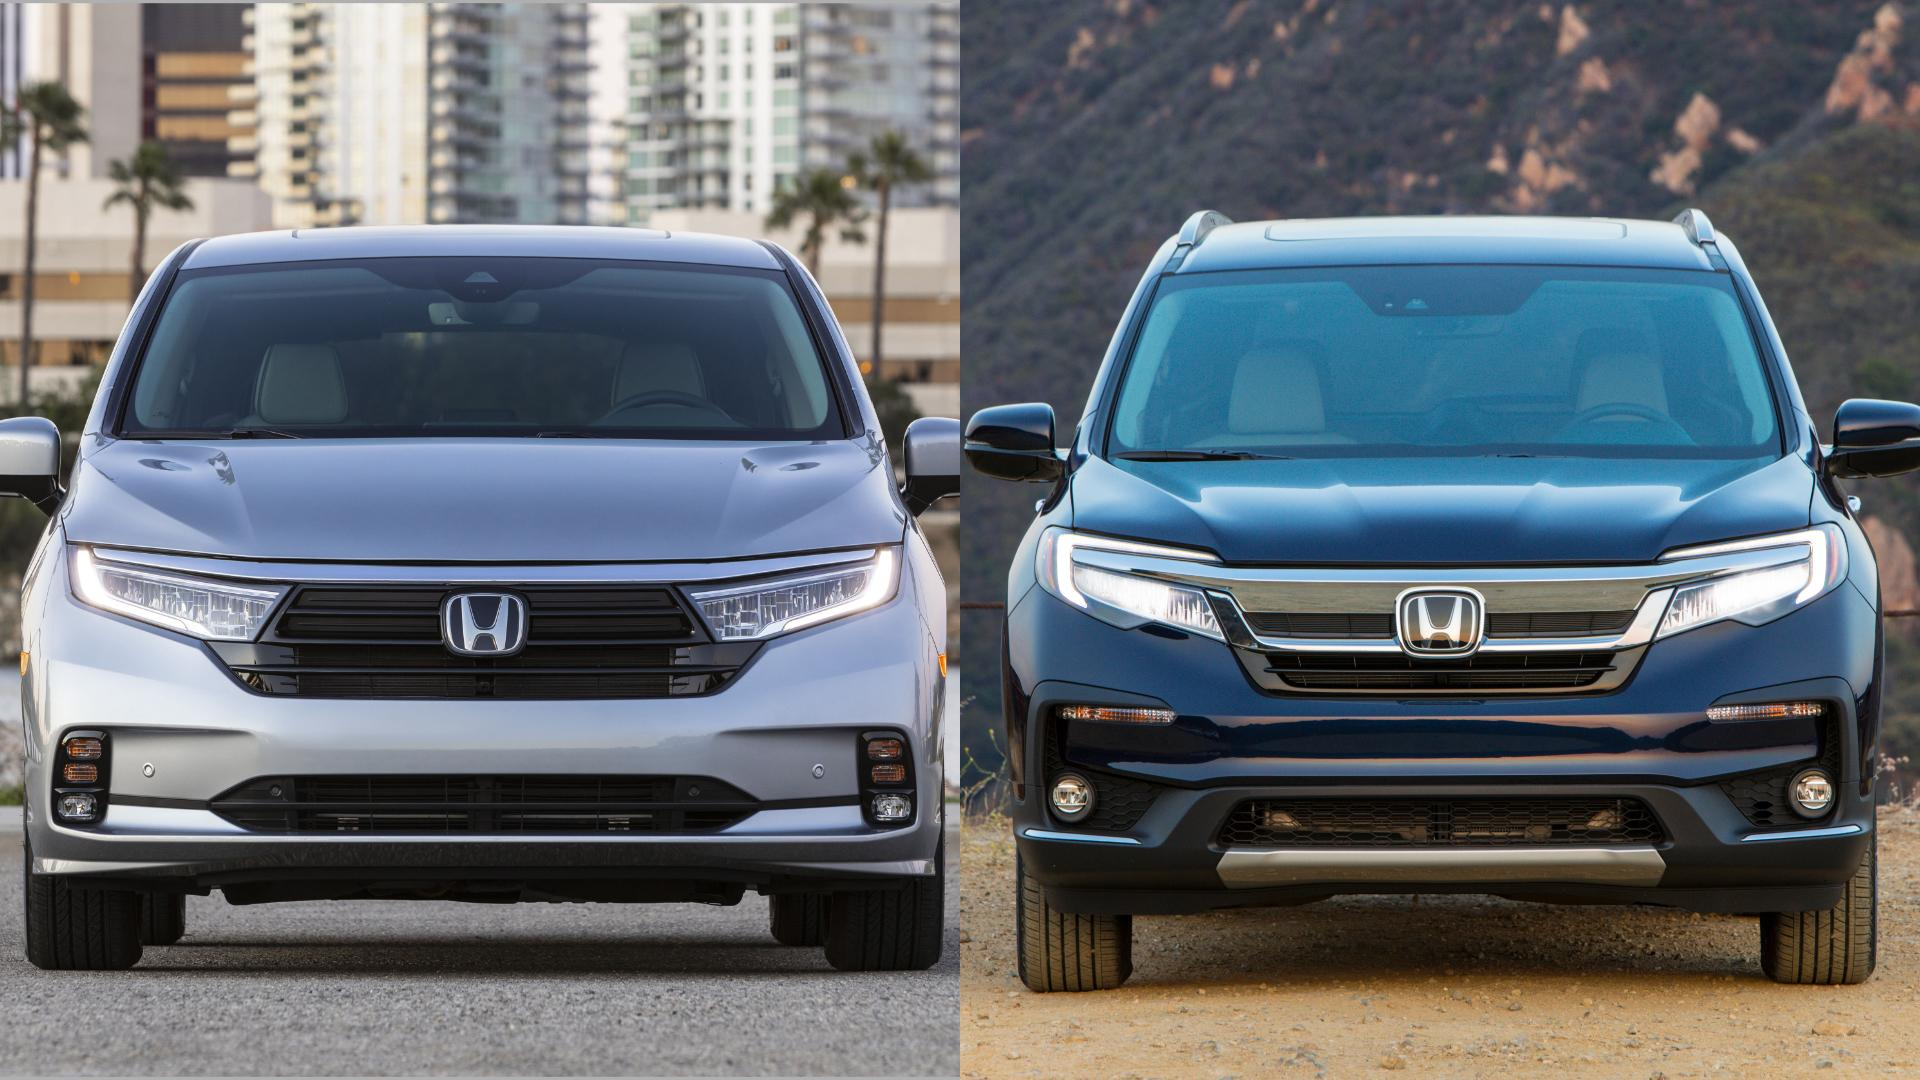 Honda Odyssey vs Honda Pilot: Is It Time To Consider A Minivan?